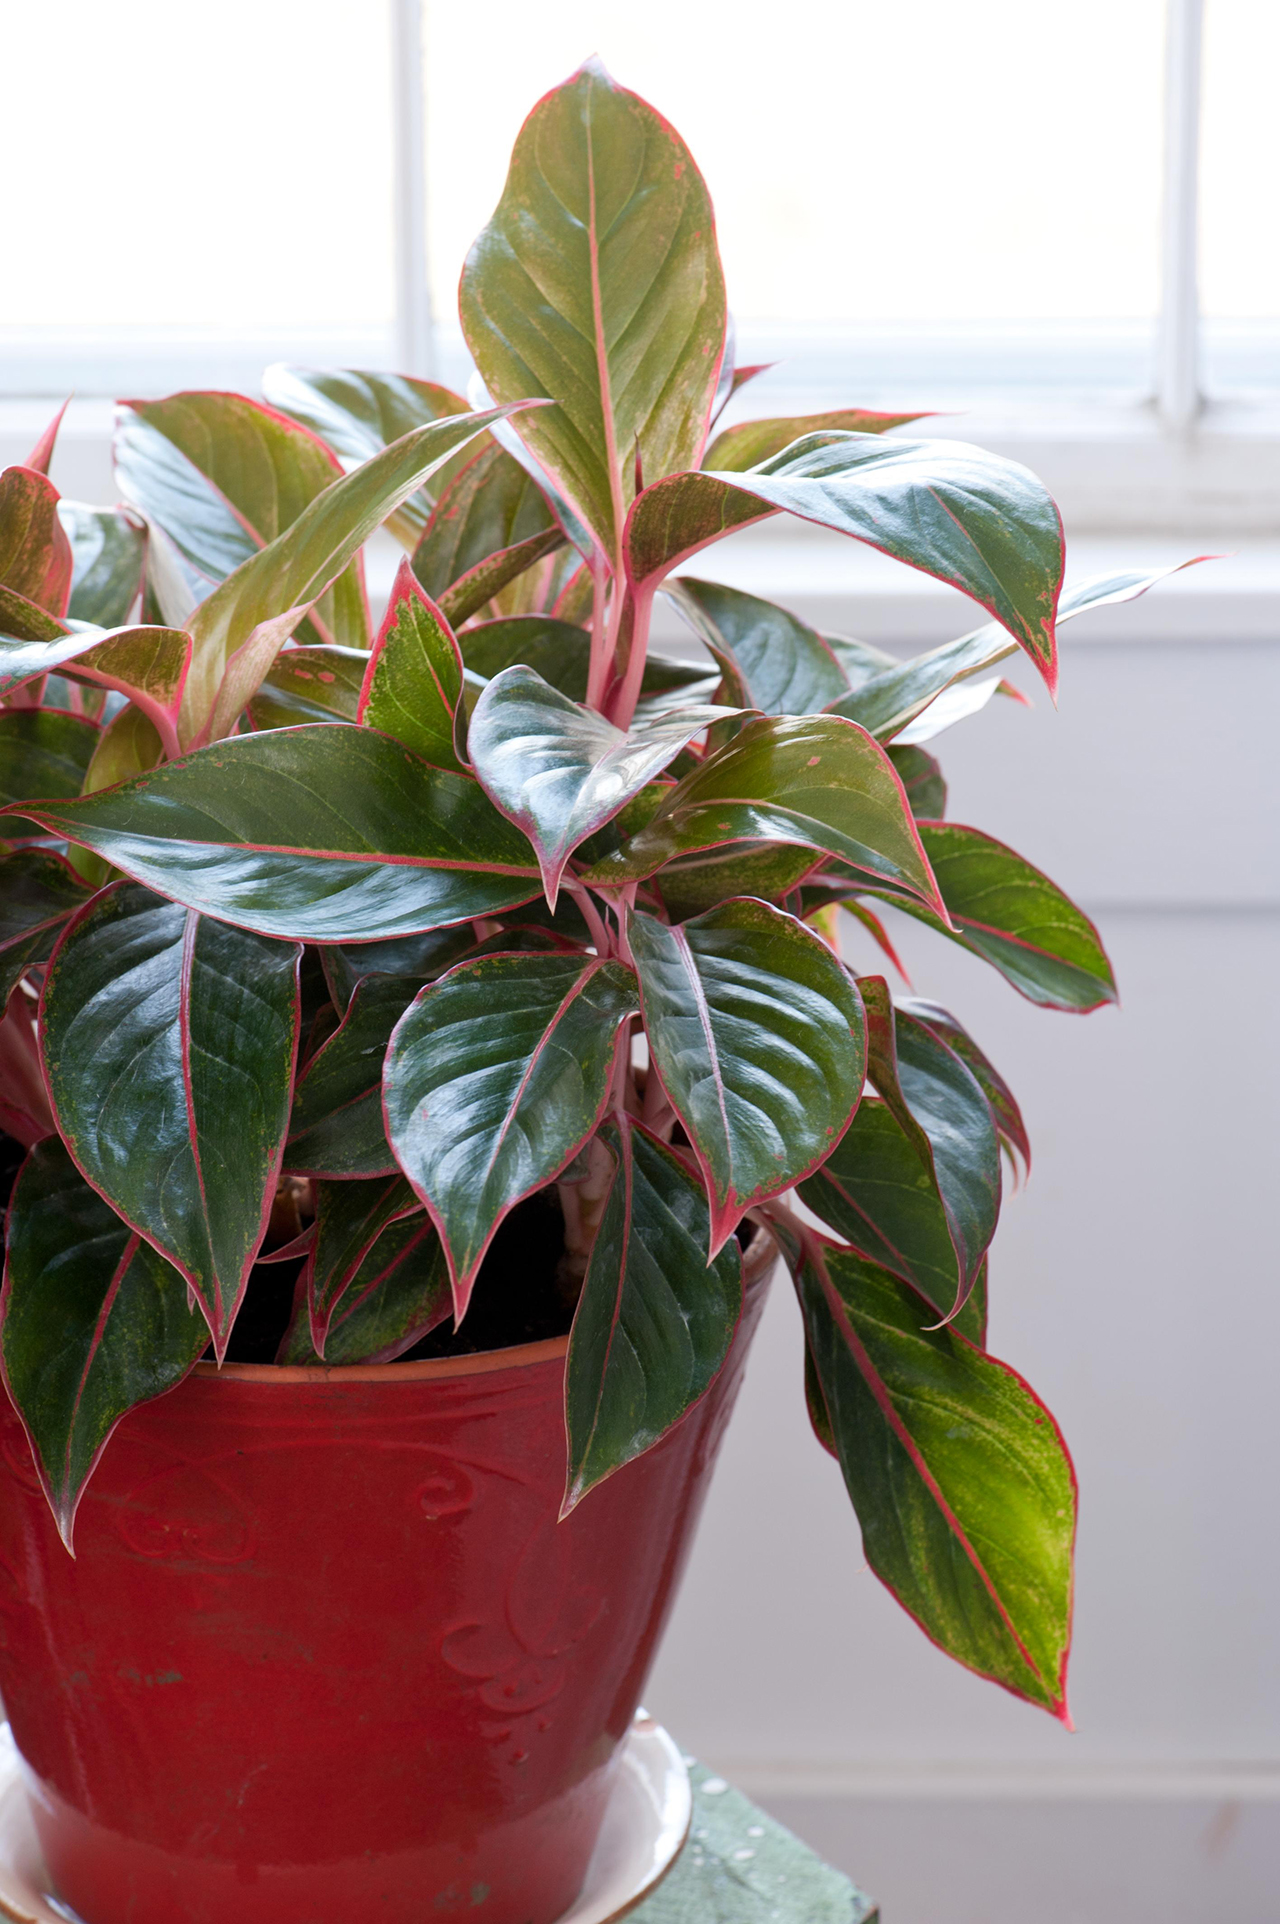 These 5 Houseplants Are Ridiculously Easy to Grow